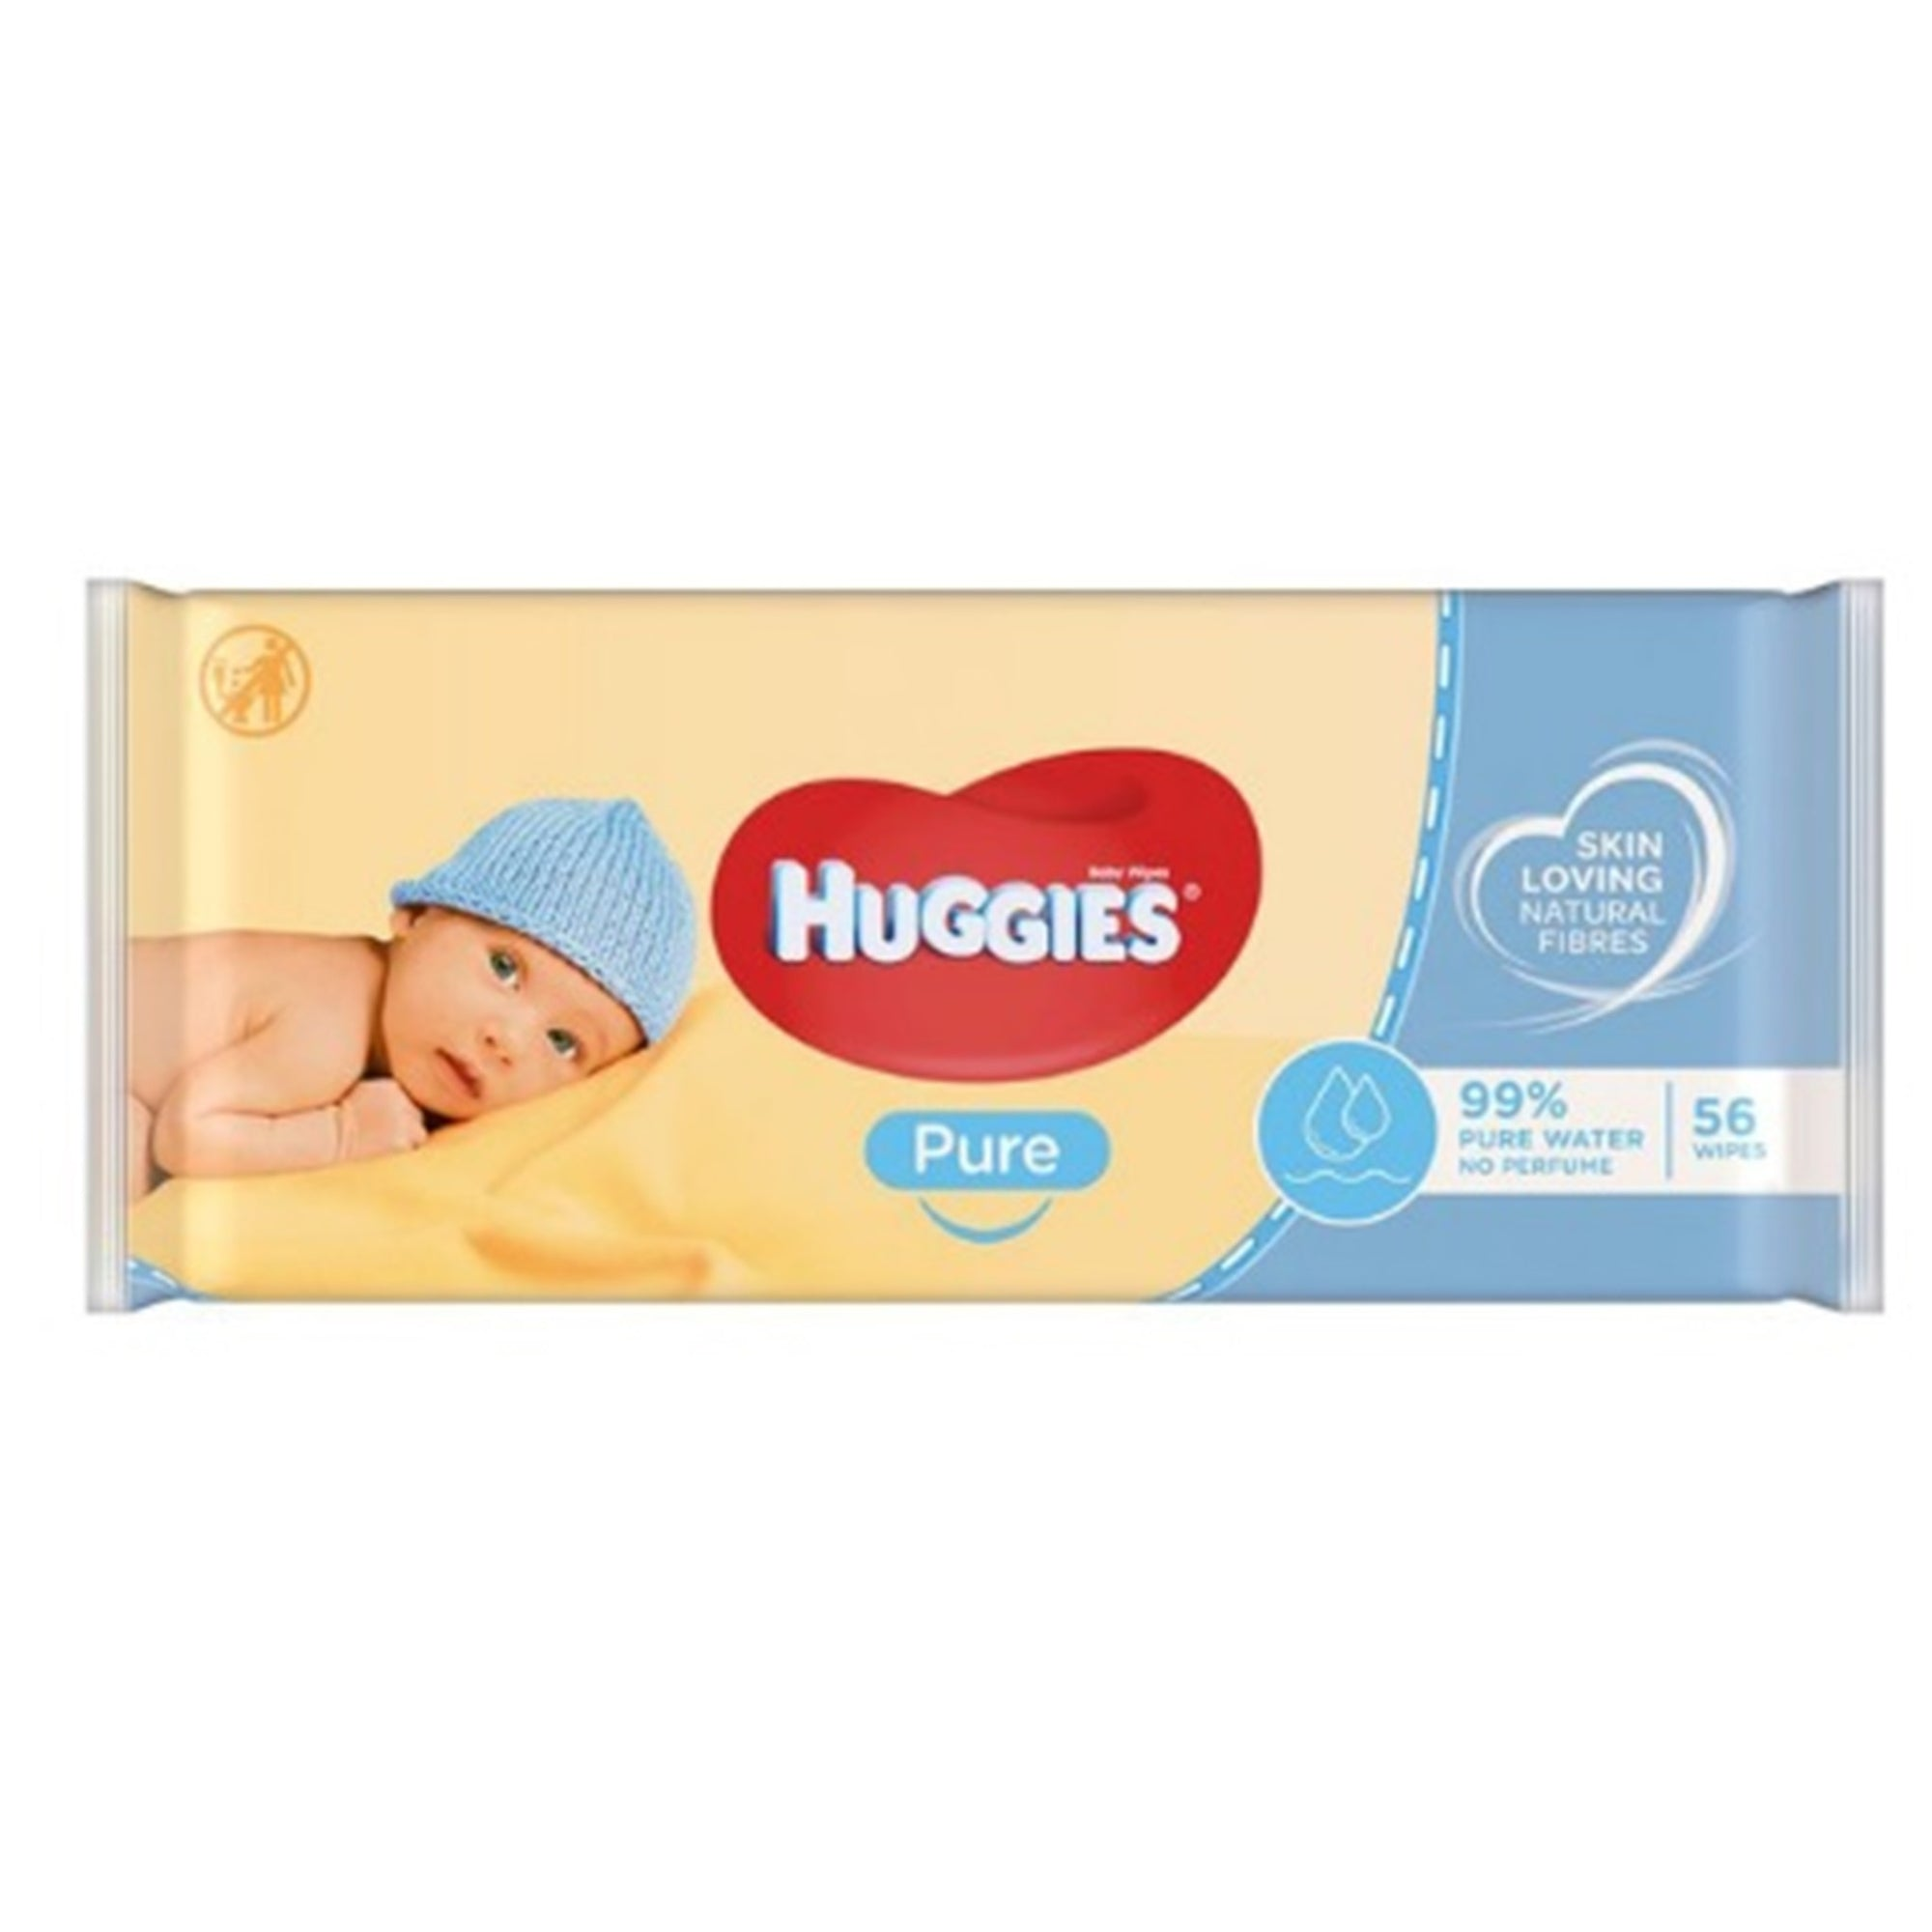 Huggies Baby Wipes Pure 56Pk